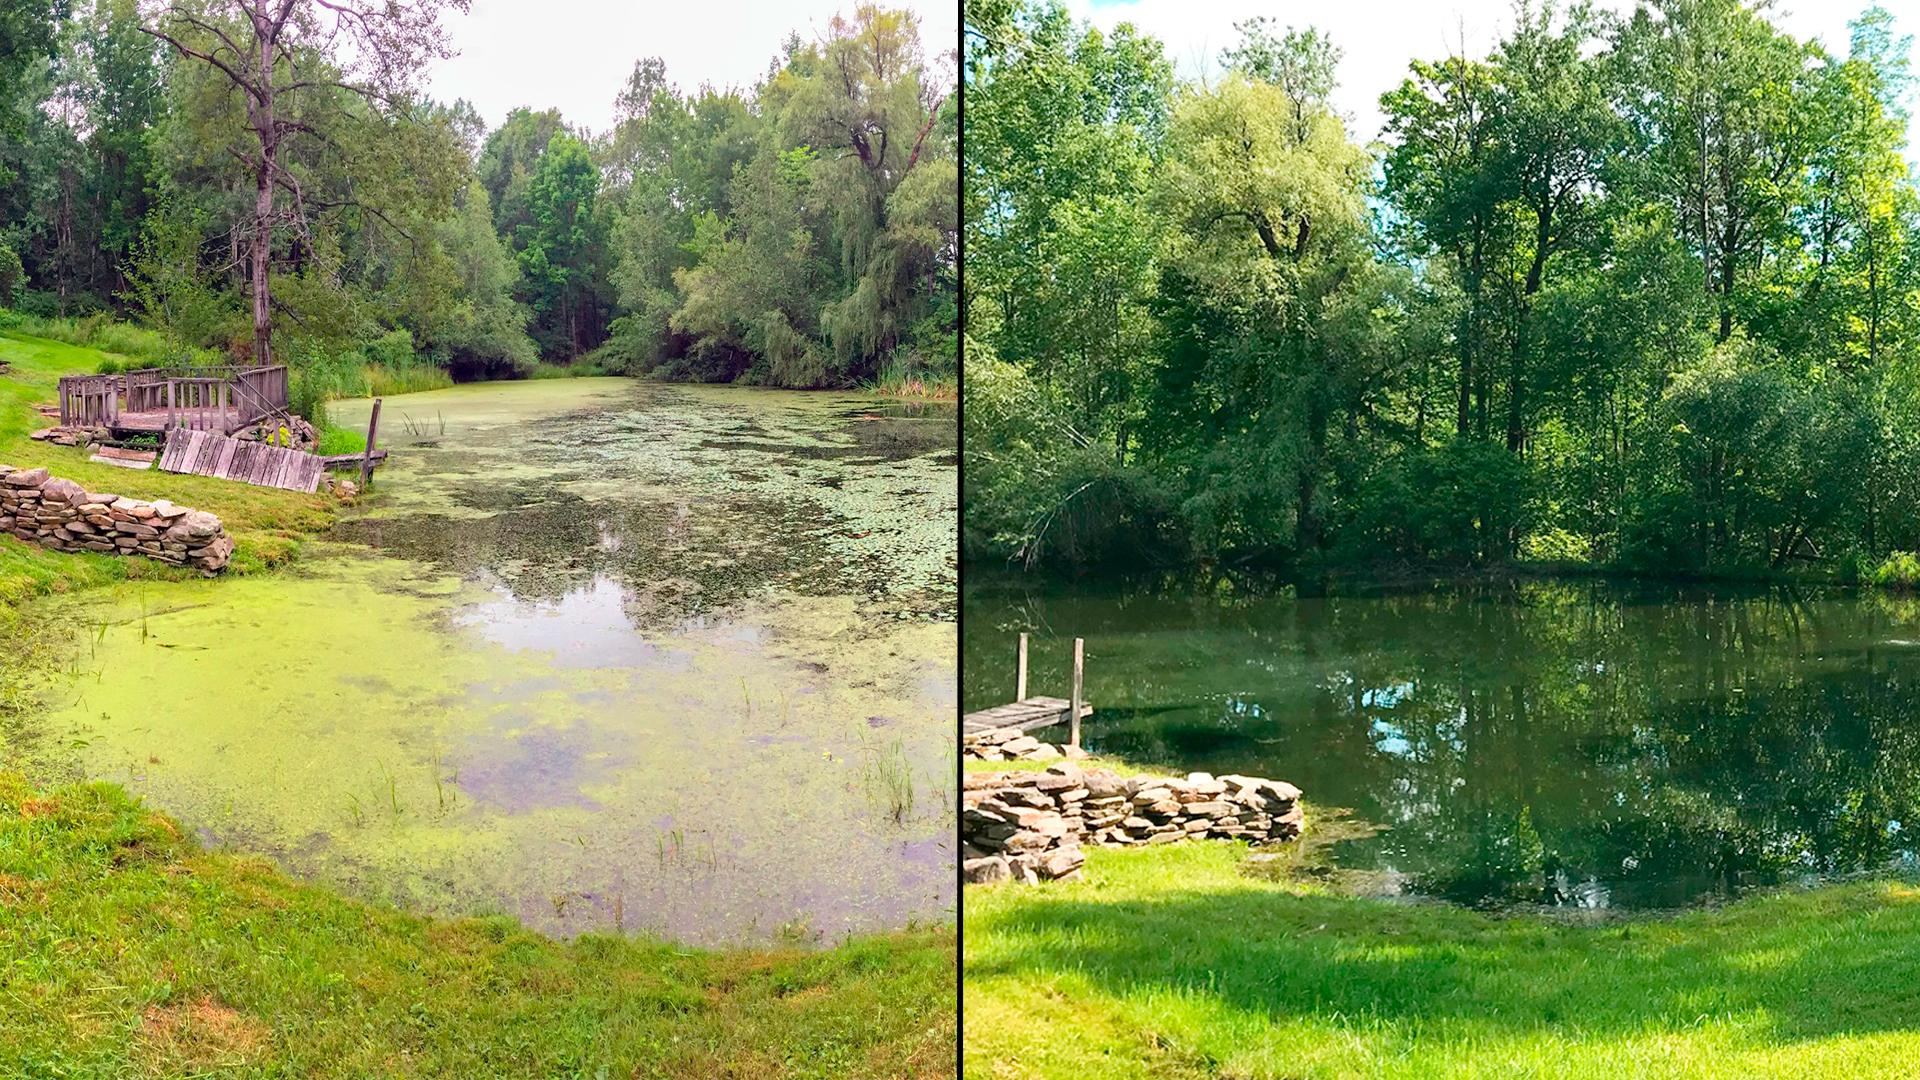 This pond in Pennsylvania was covered in algae blooms and duckweed. After treating with Natural Waterscapes' products, this pond has been brought back to its glory.